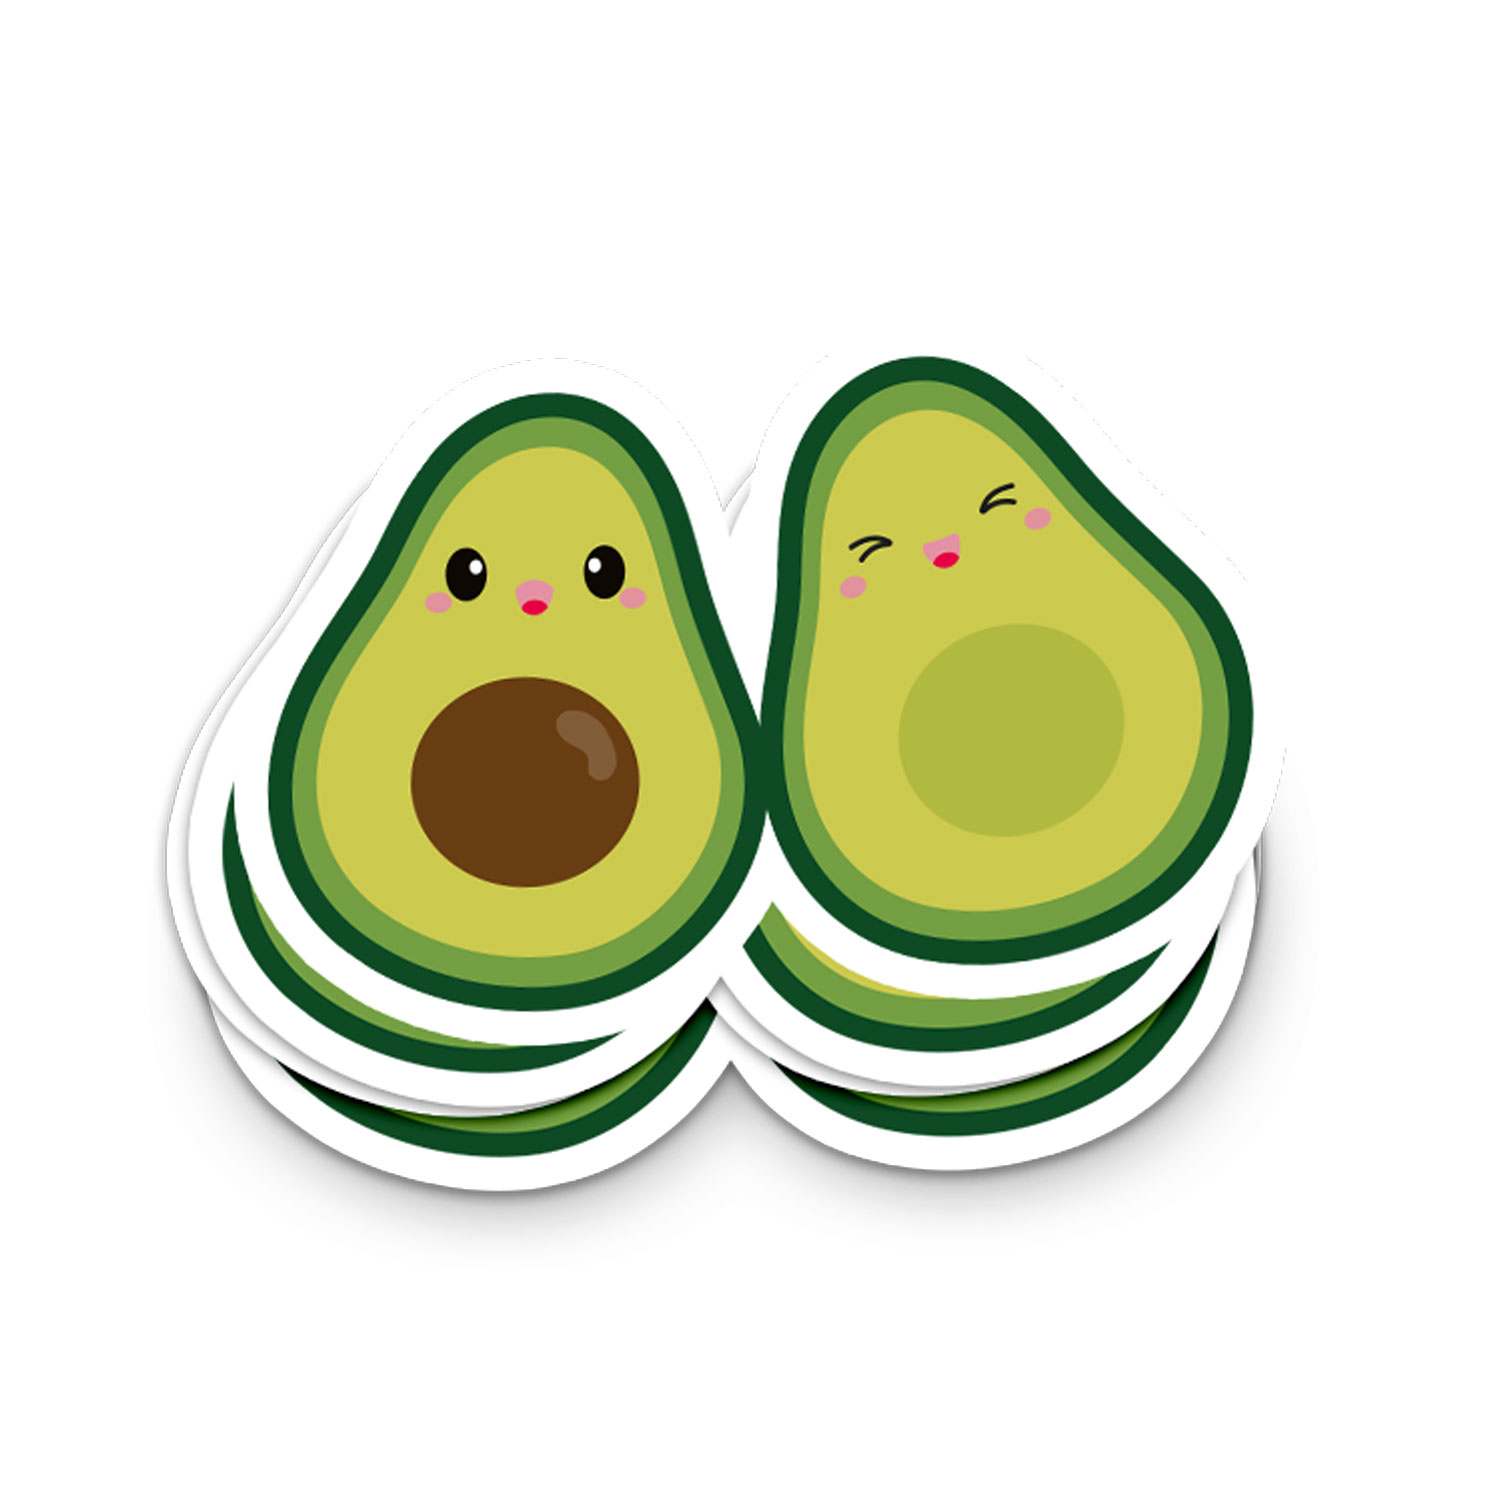 STICKER XL AVOCADO DUO